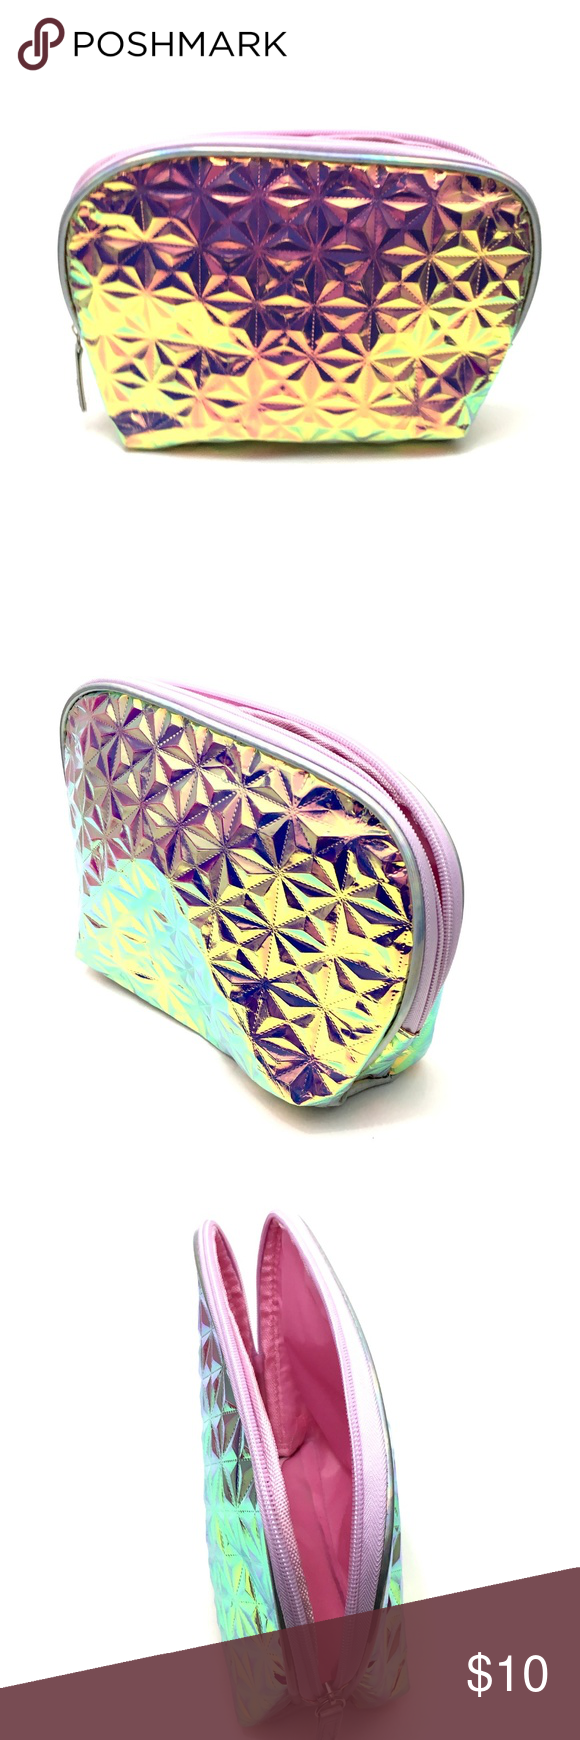 5 FOR 25 Holographic Makeup Bag Holographic makeup